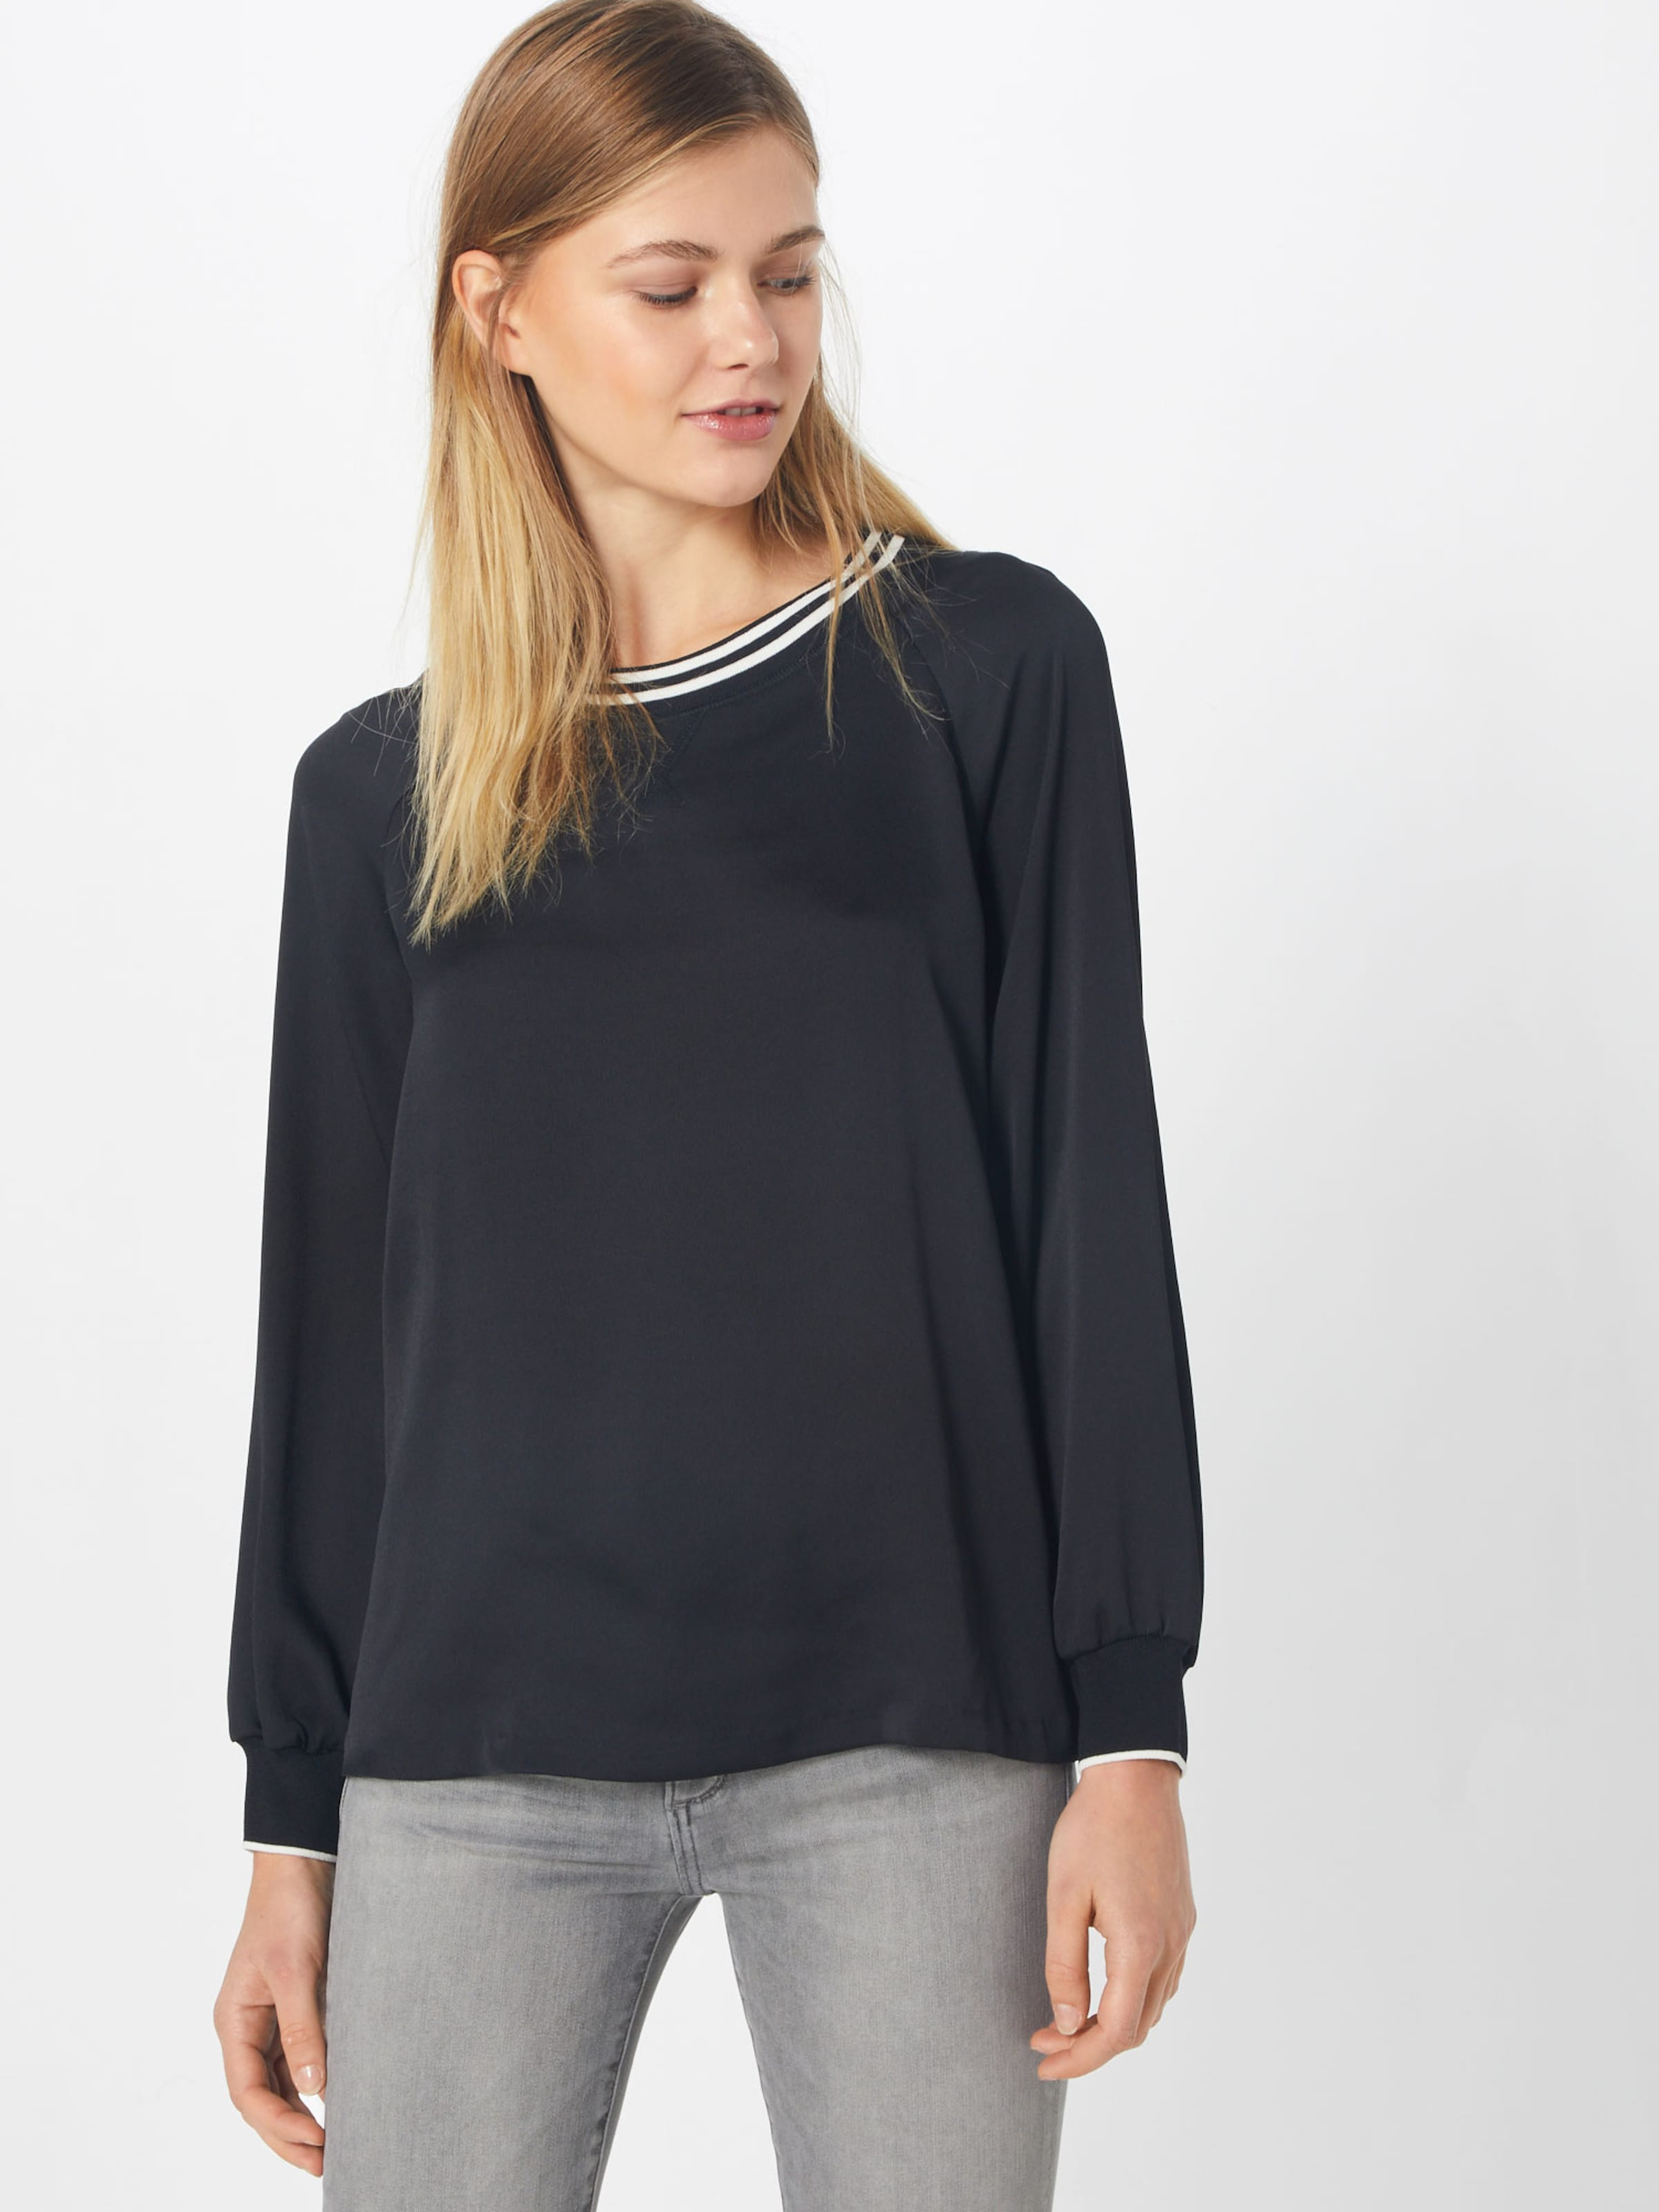 Trim Noir Sweat Republic Top' 'ls Varsity Banana En shirt jAR35L4